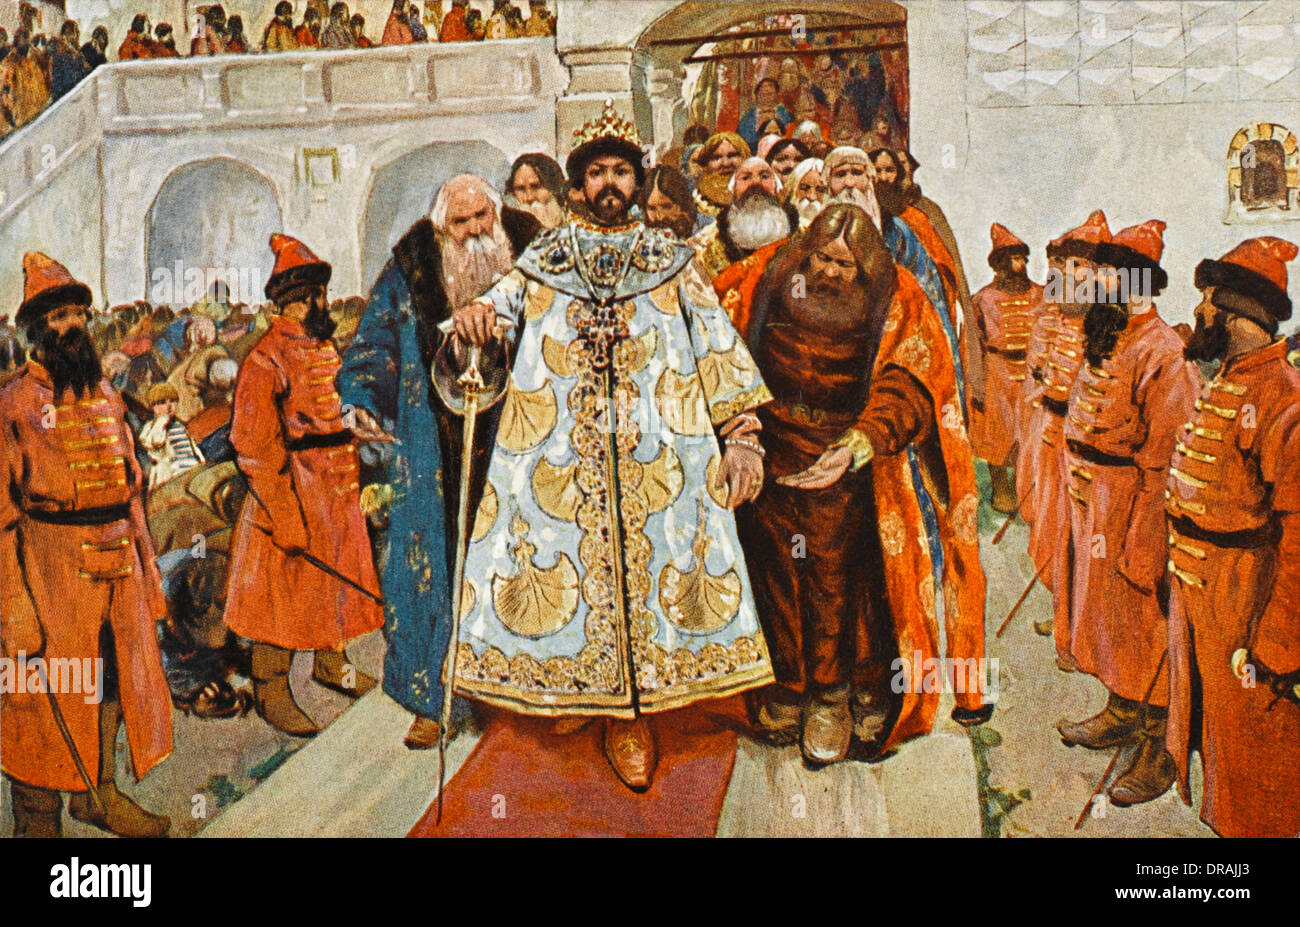 The Silver Age of Russian Culture: Parnassus of Deep Spirituality 56